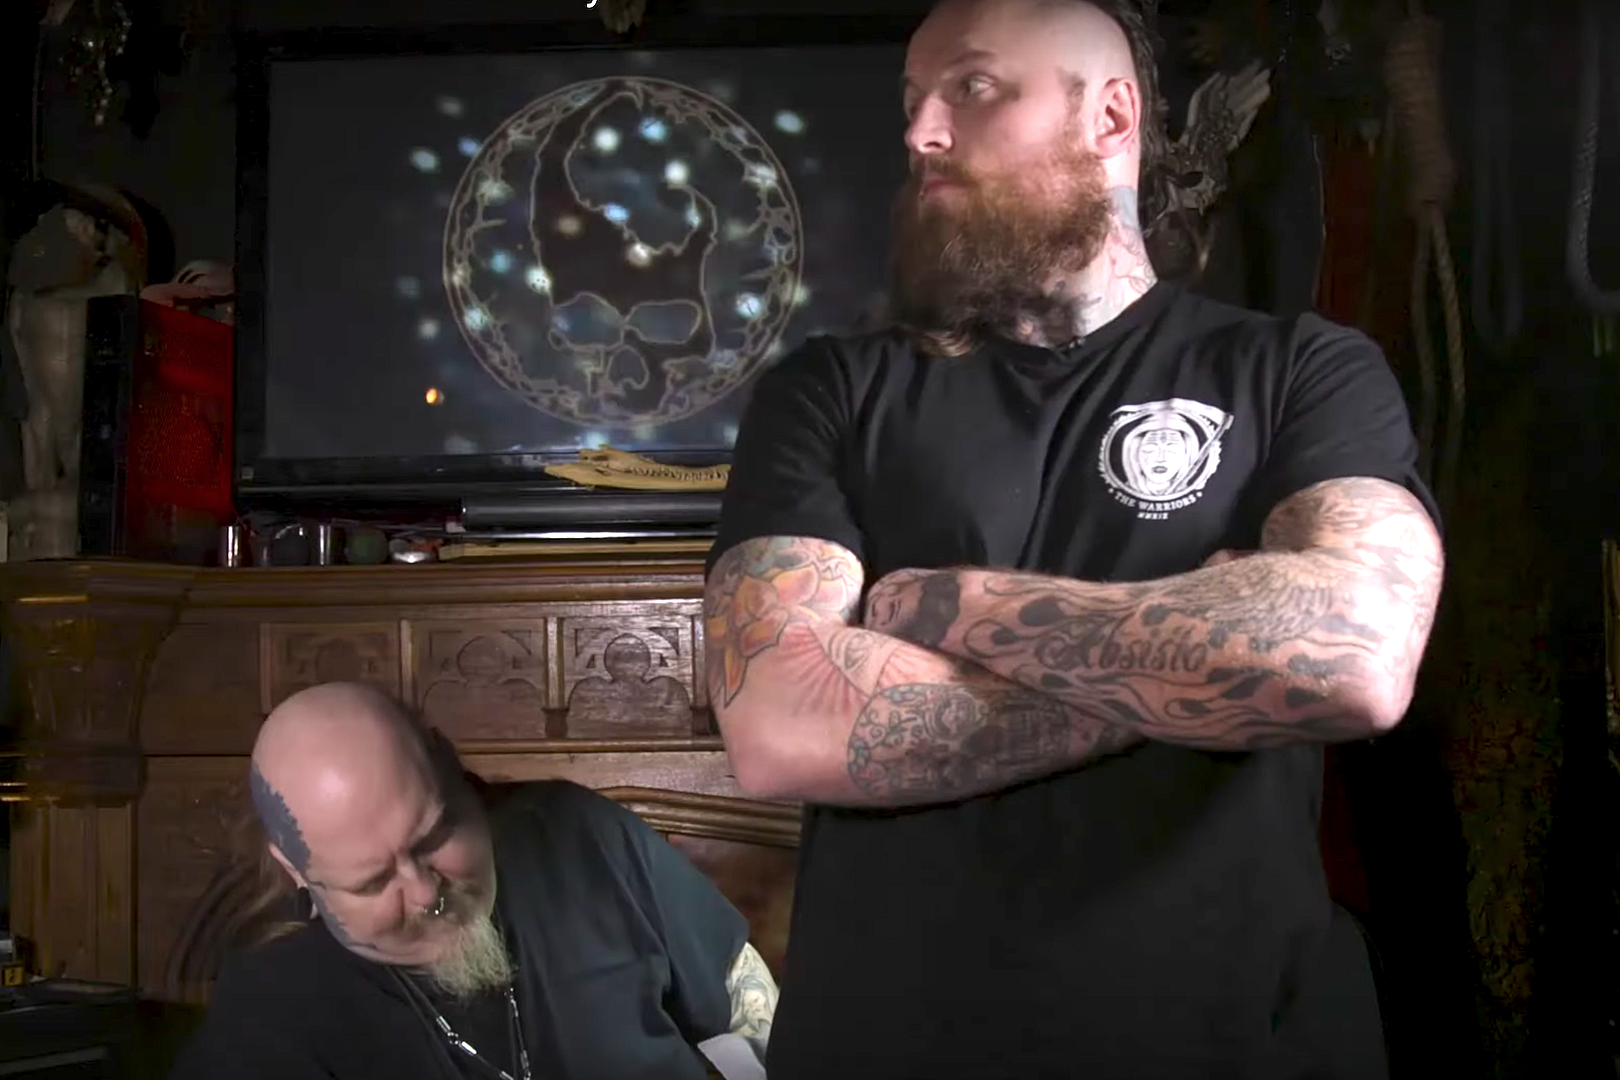 WWE's Aleister Black Talks Black Metal While Getting Tattooed by Paul Booth